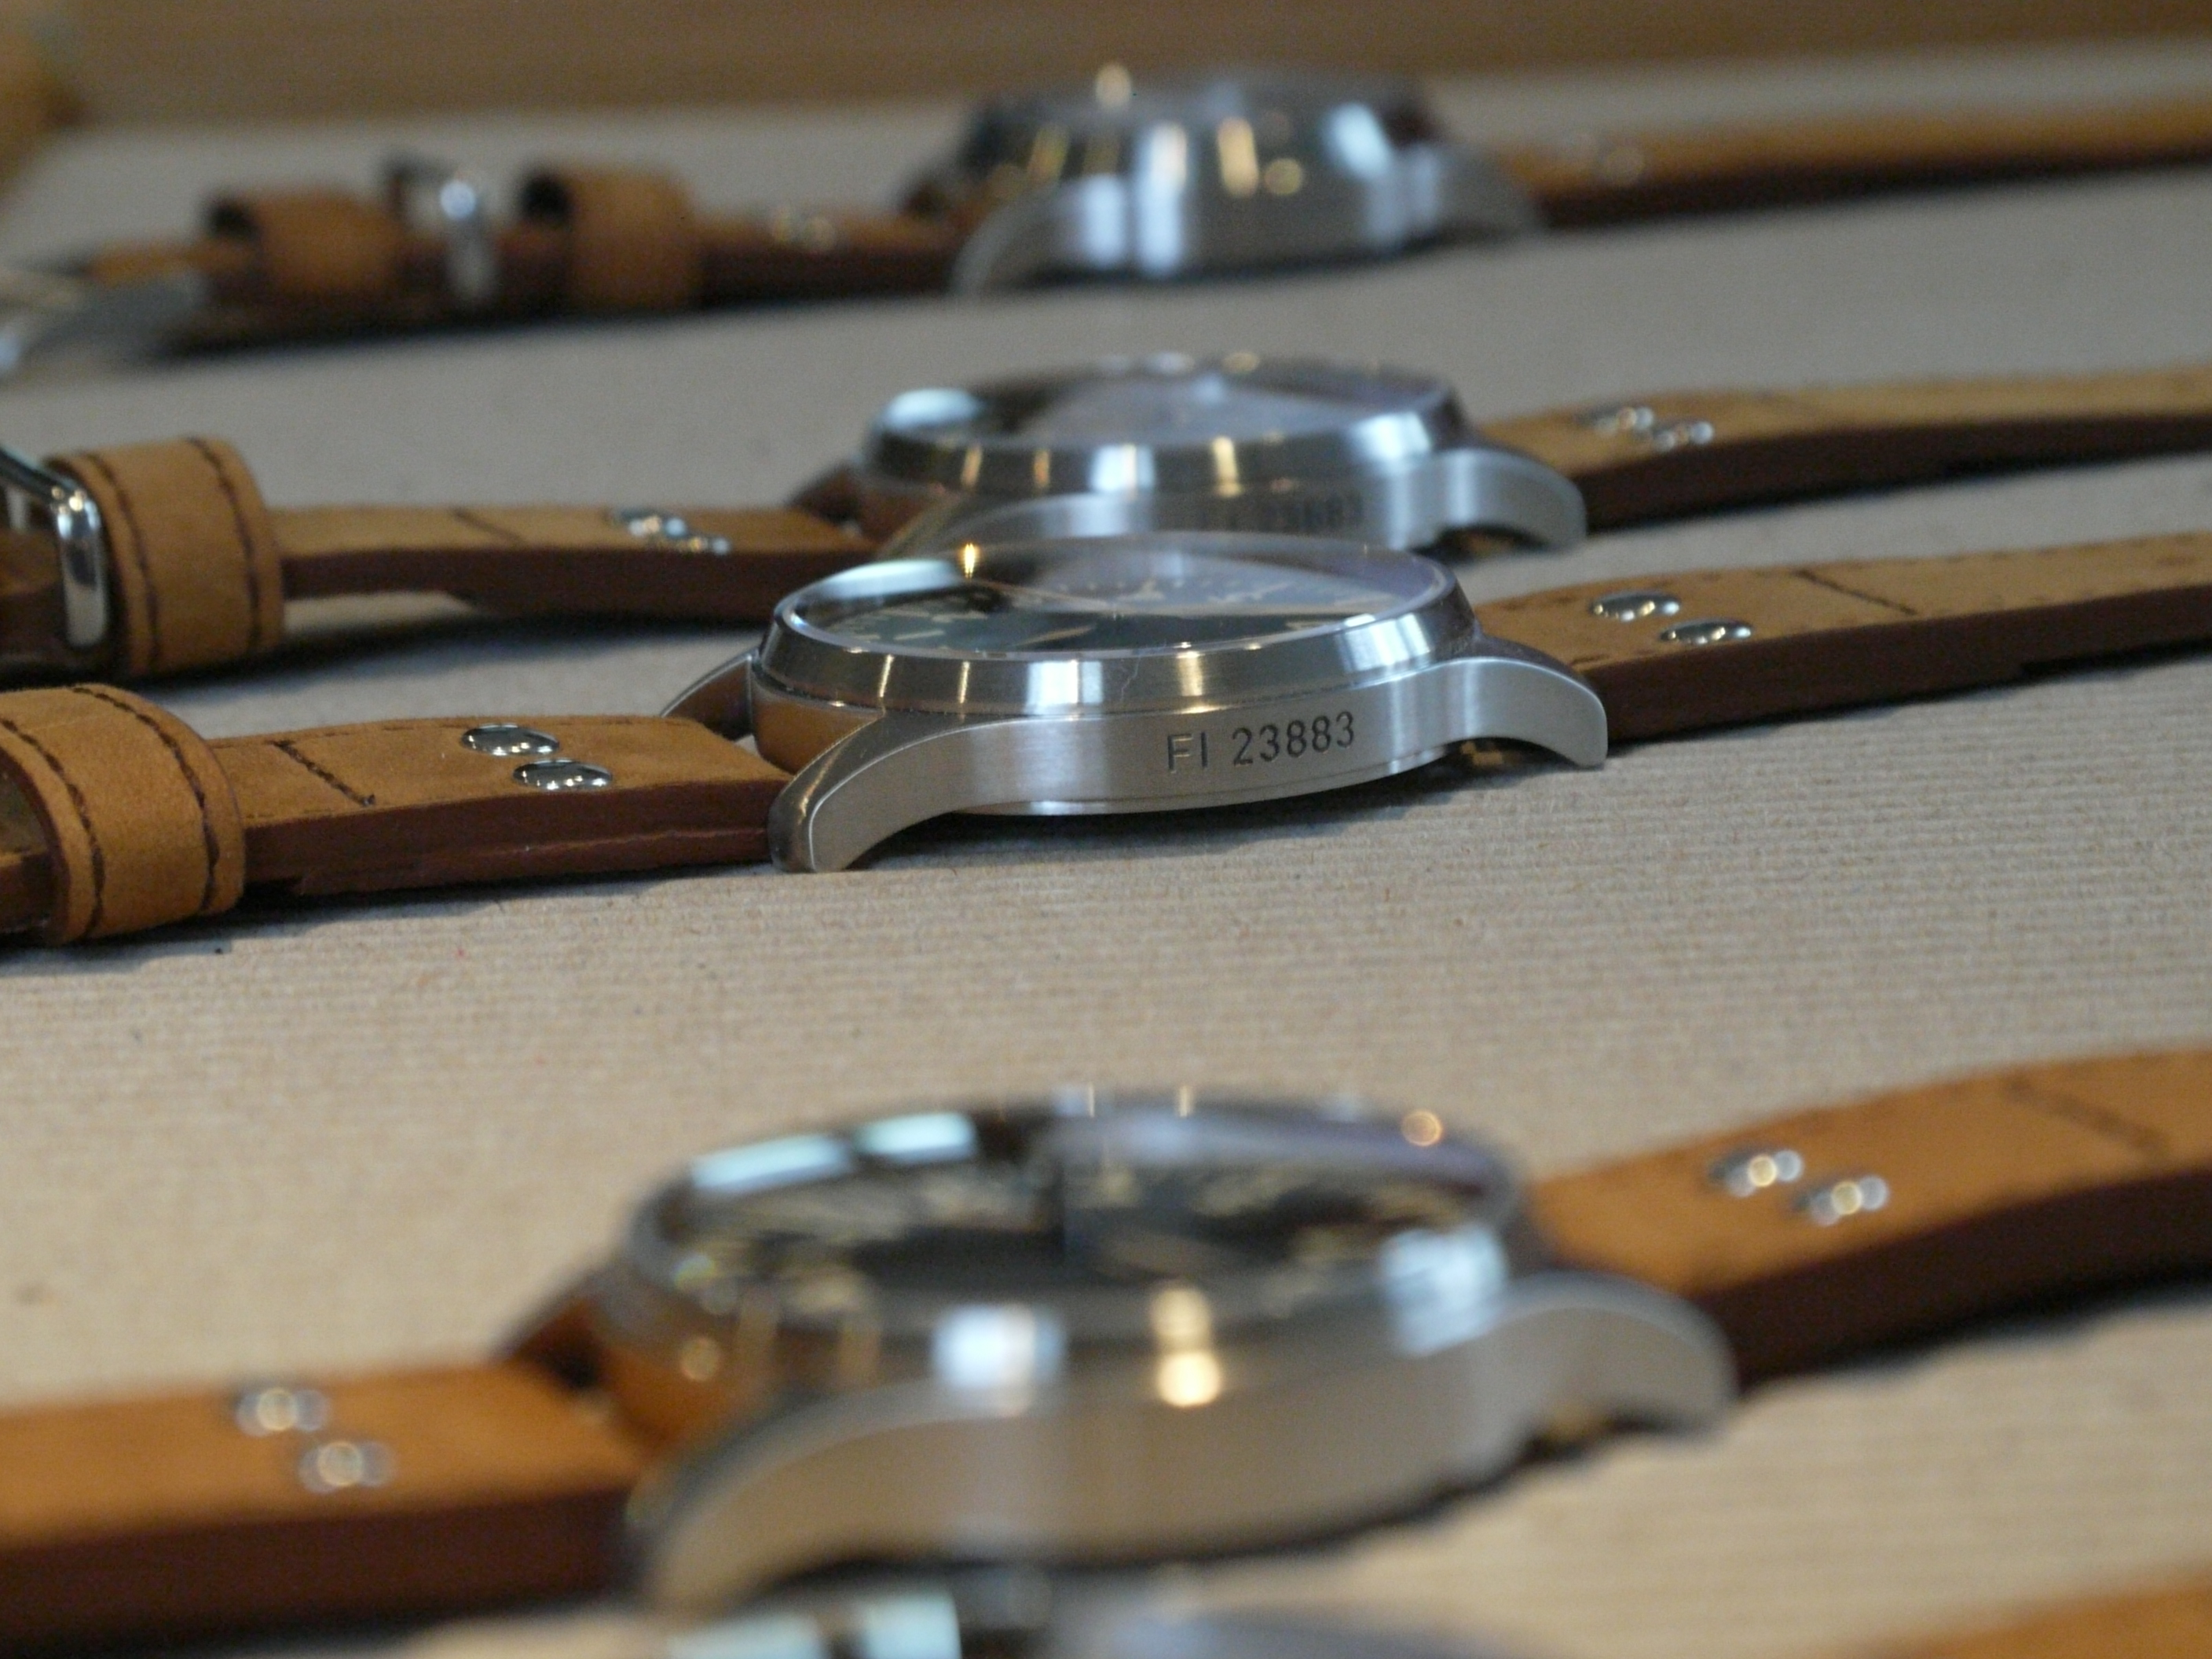 Limited Edition Fliegers with special engraving